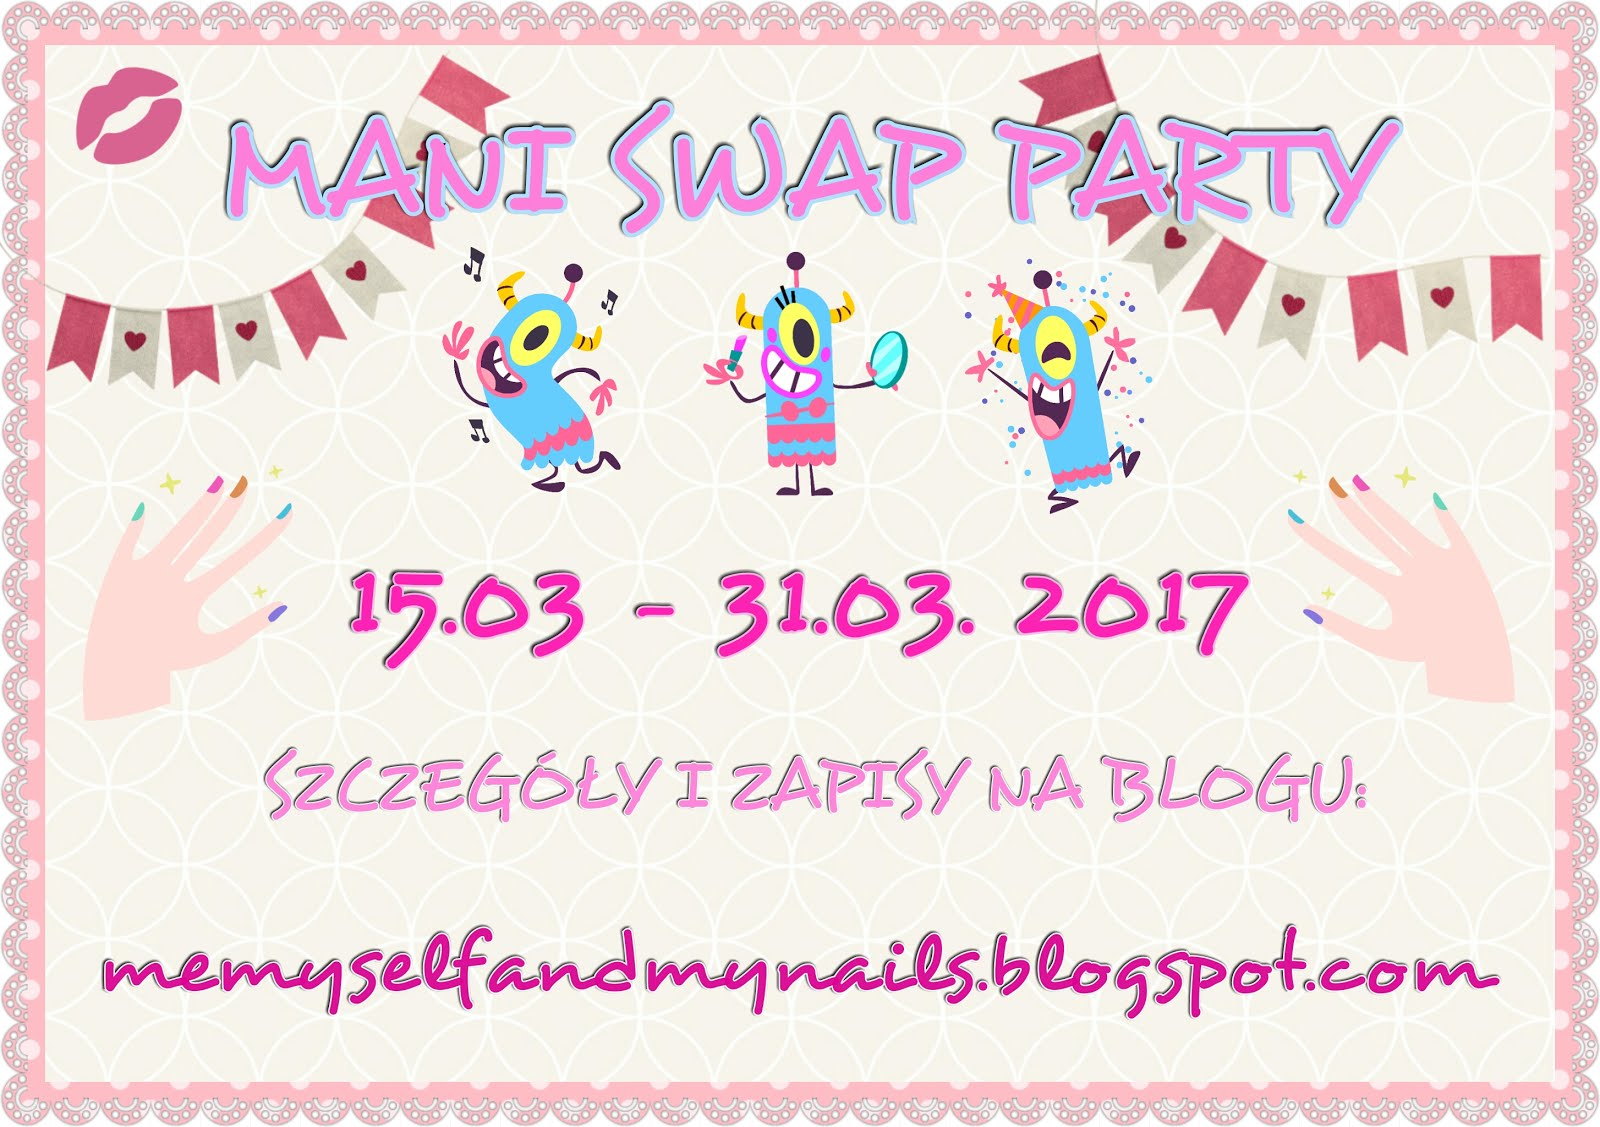 MANI SWAP PARTY